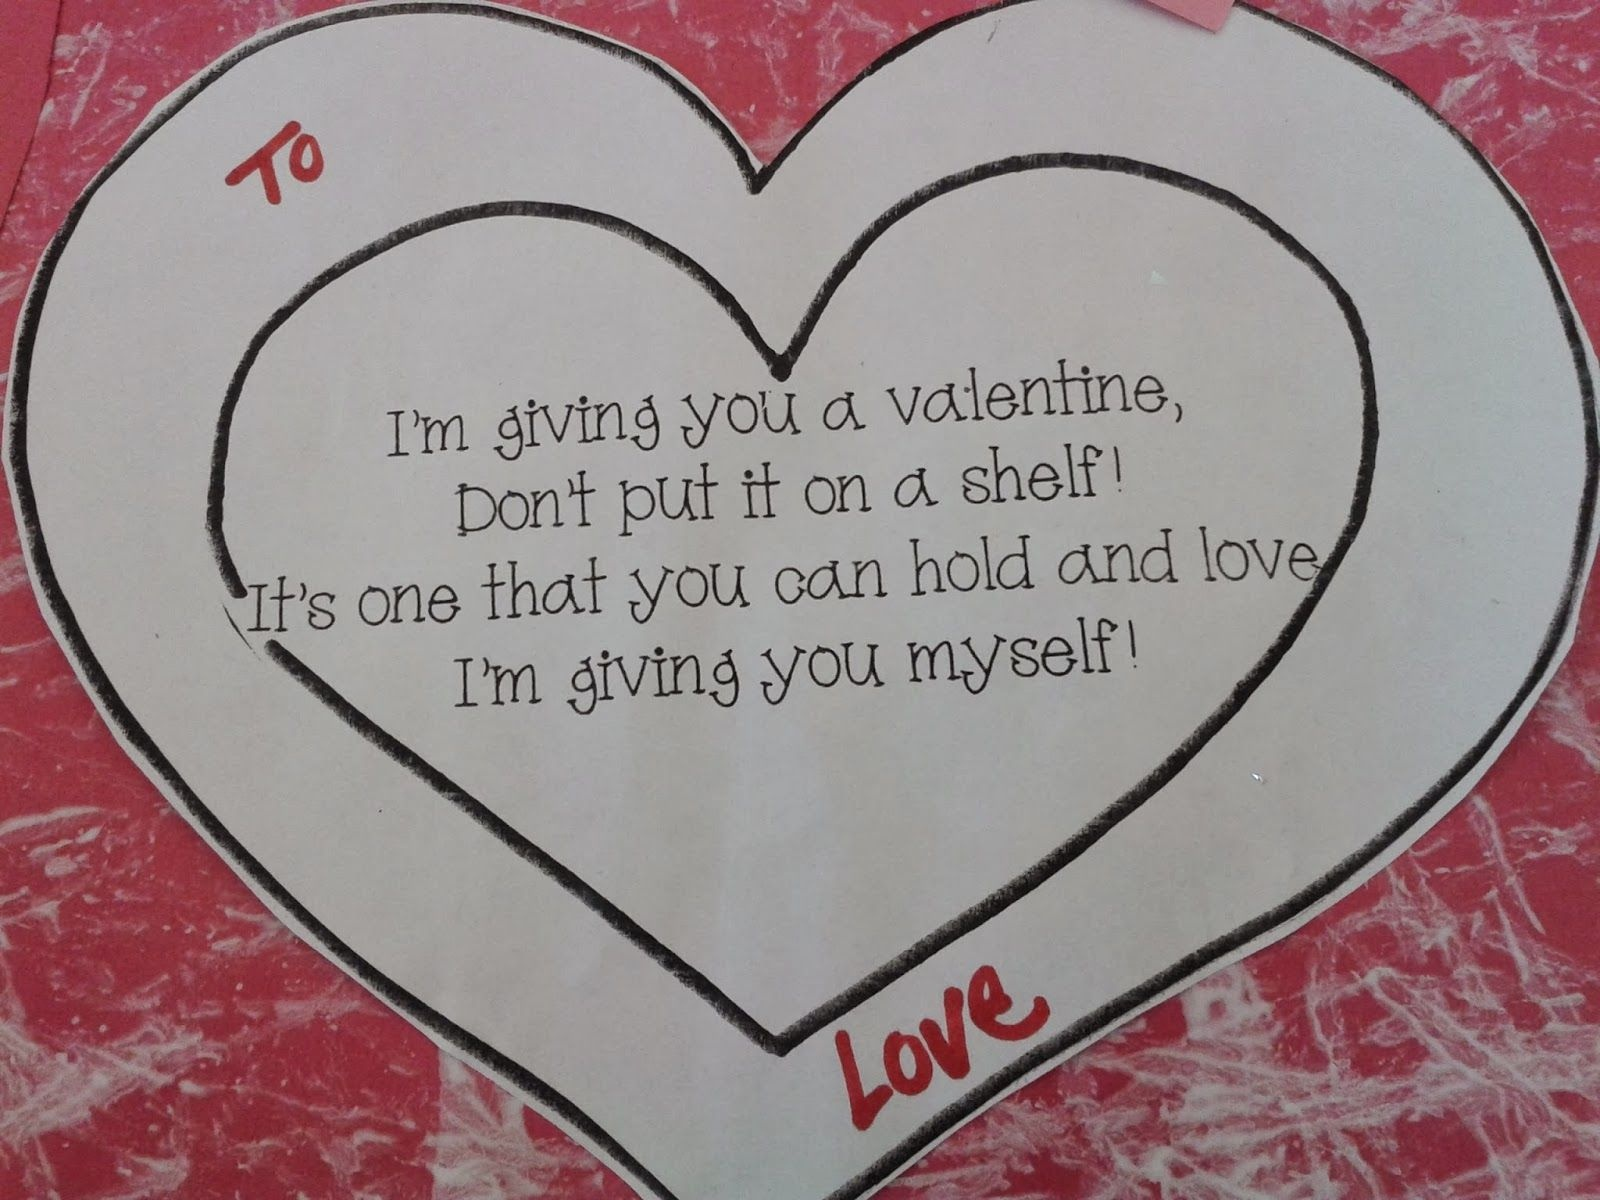 Show The Love! Valentine's Day Cards For Parents | Preschool - Free Printable Valentines Day Cards For Parents